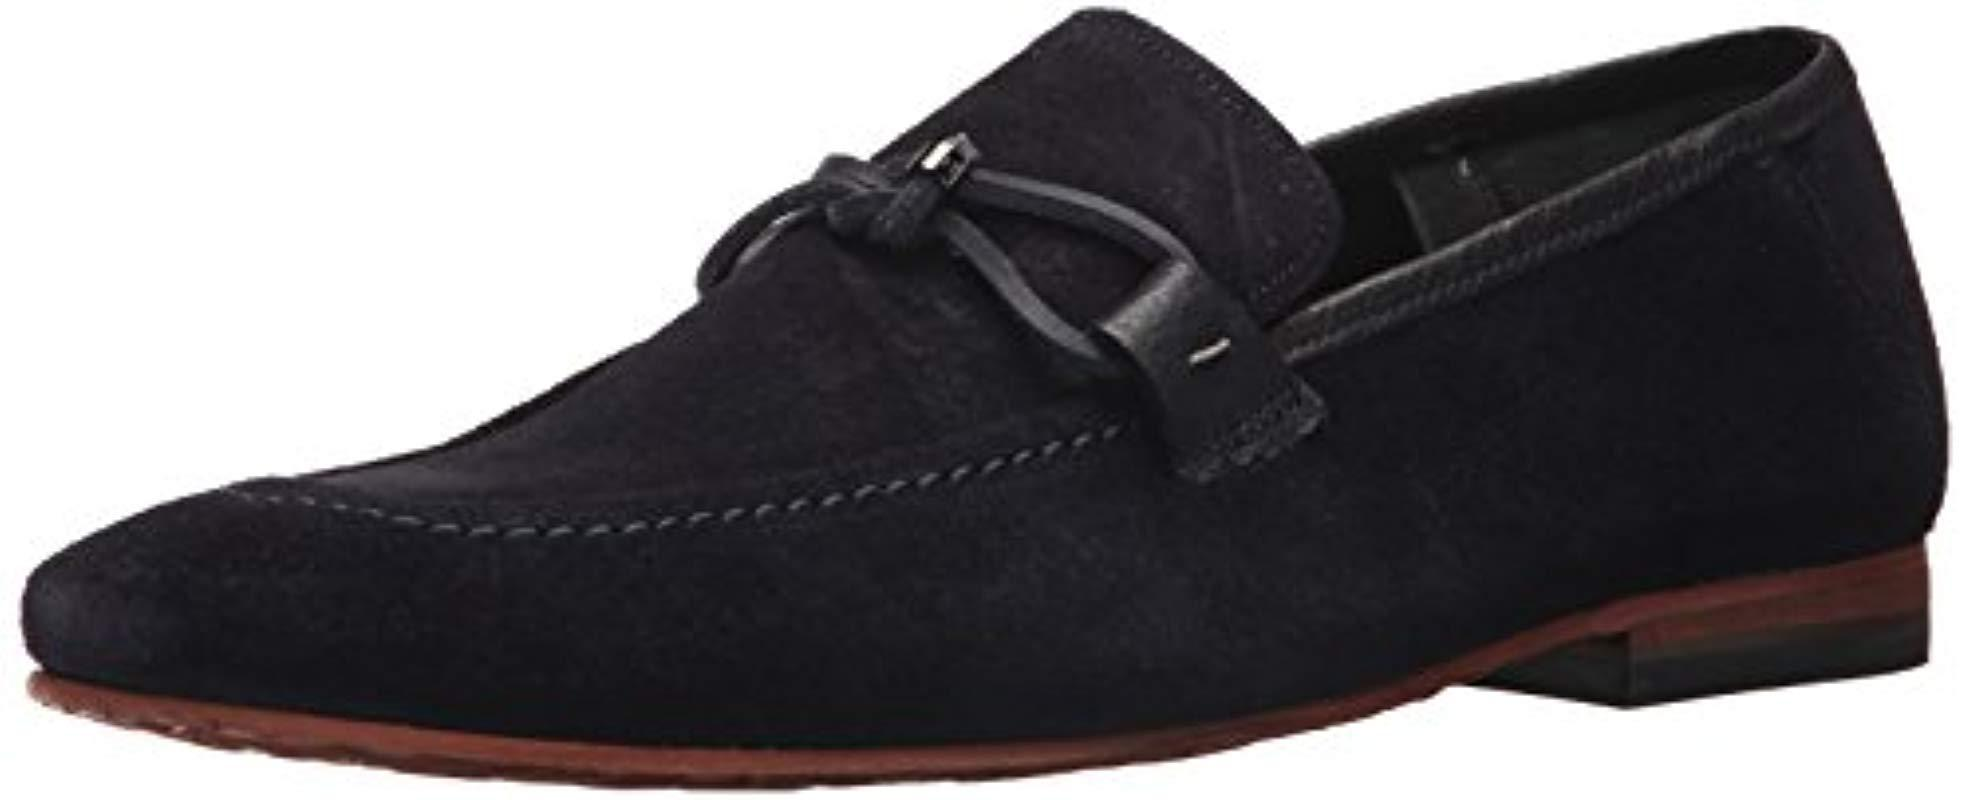 d094f2fa4 Lyst - Ted Baker Hoppken Loafer in Blue for Men - Save 43%